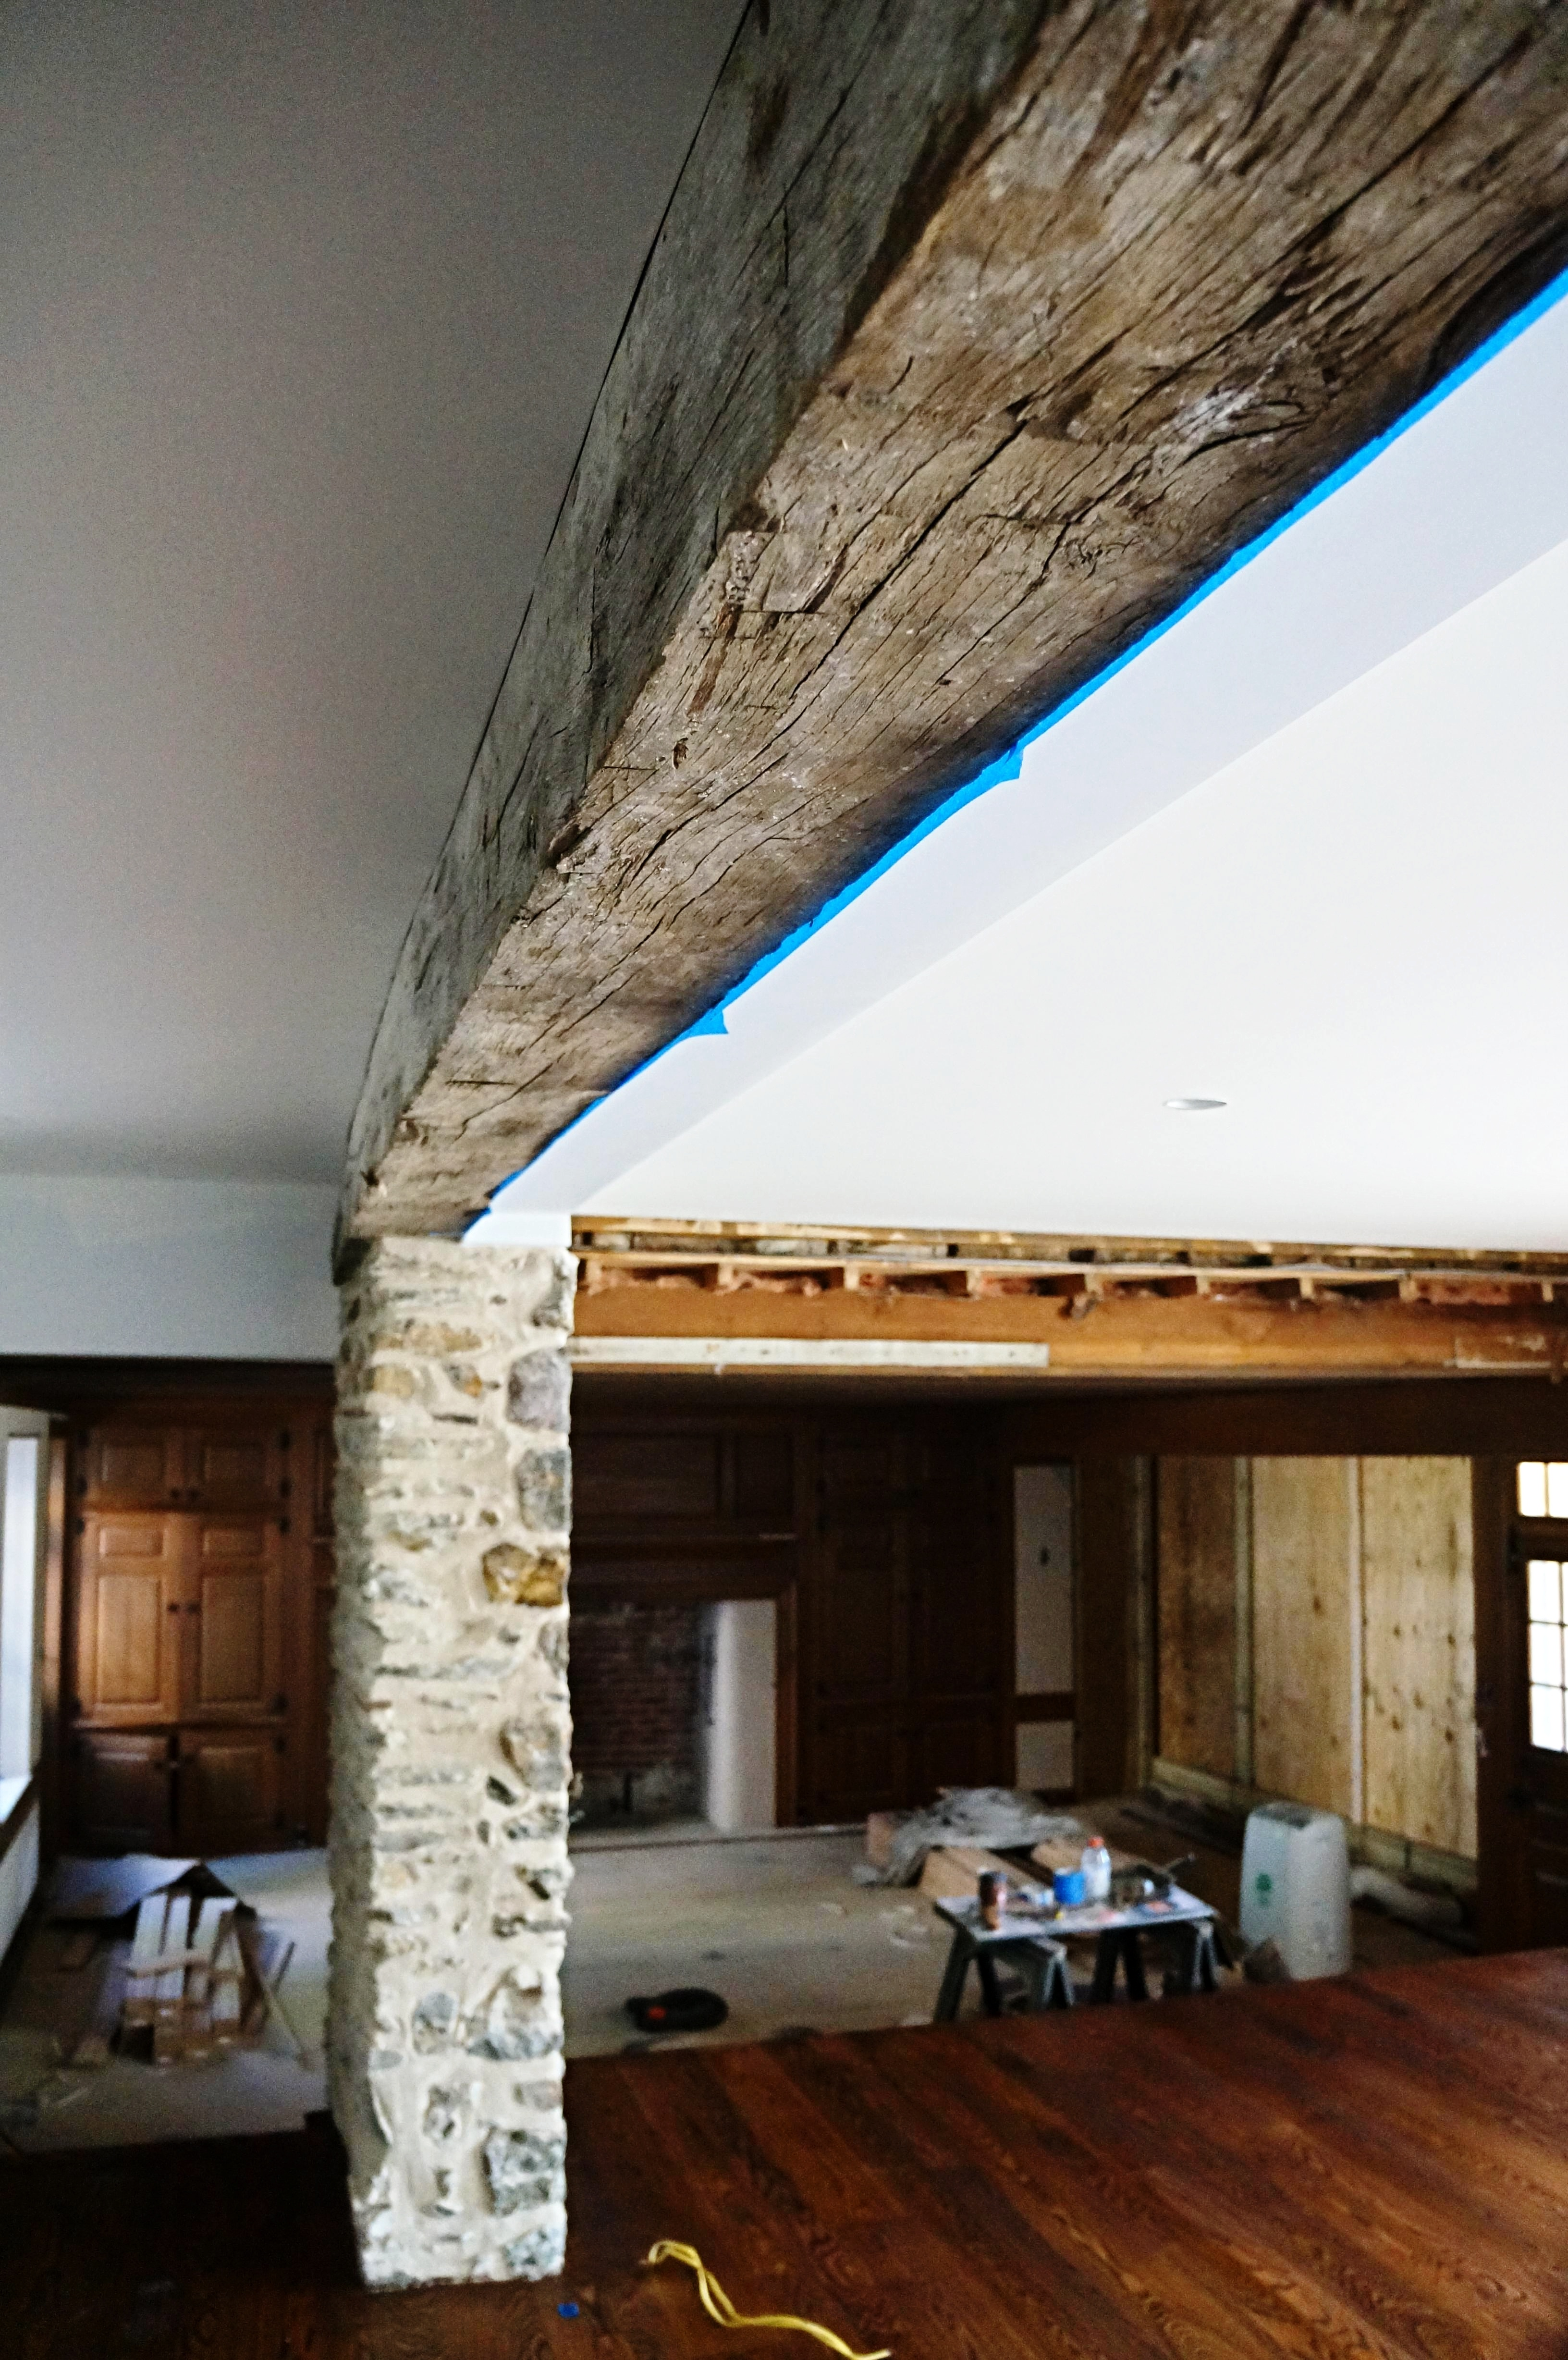 melding-old-new-remodel-addition-bigbeam.jpg